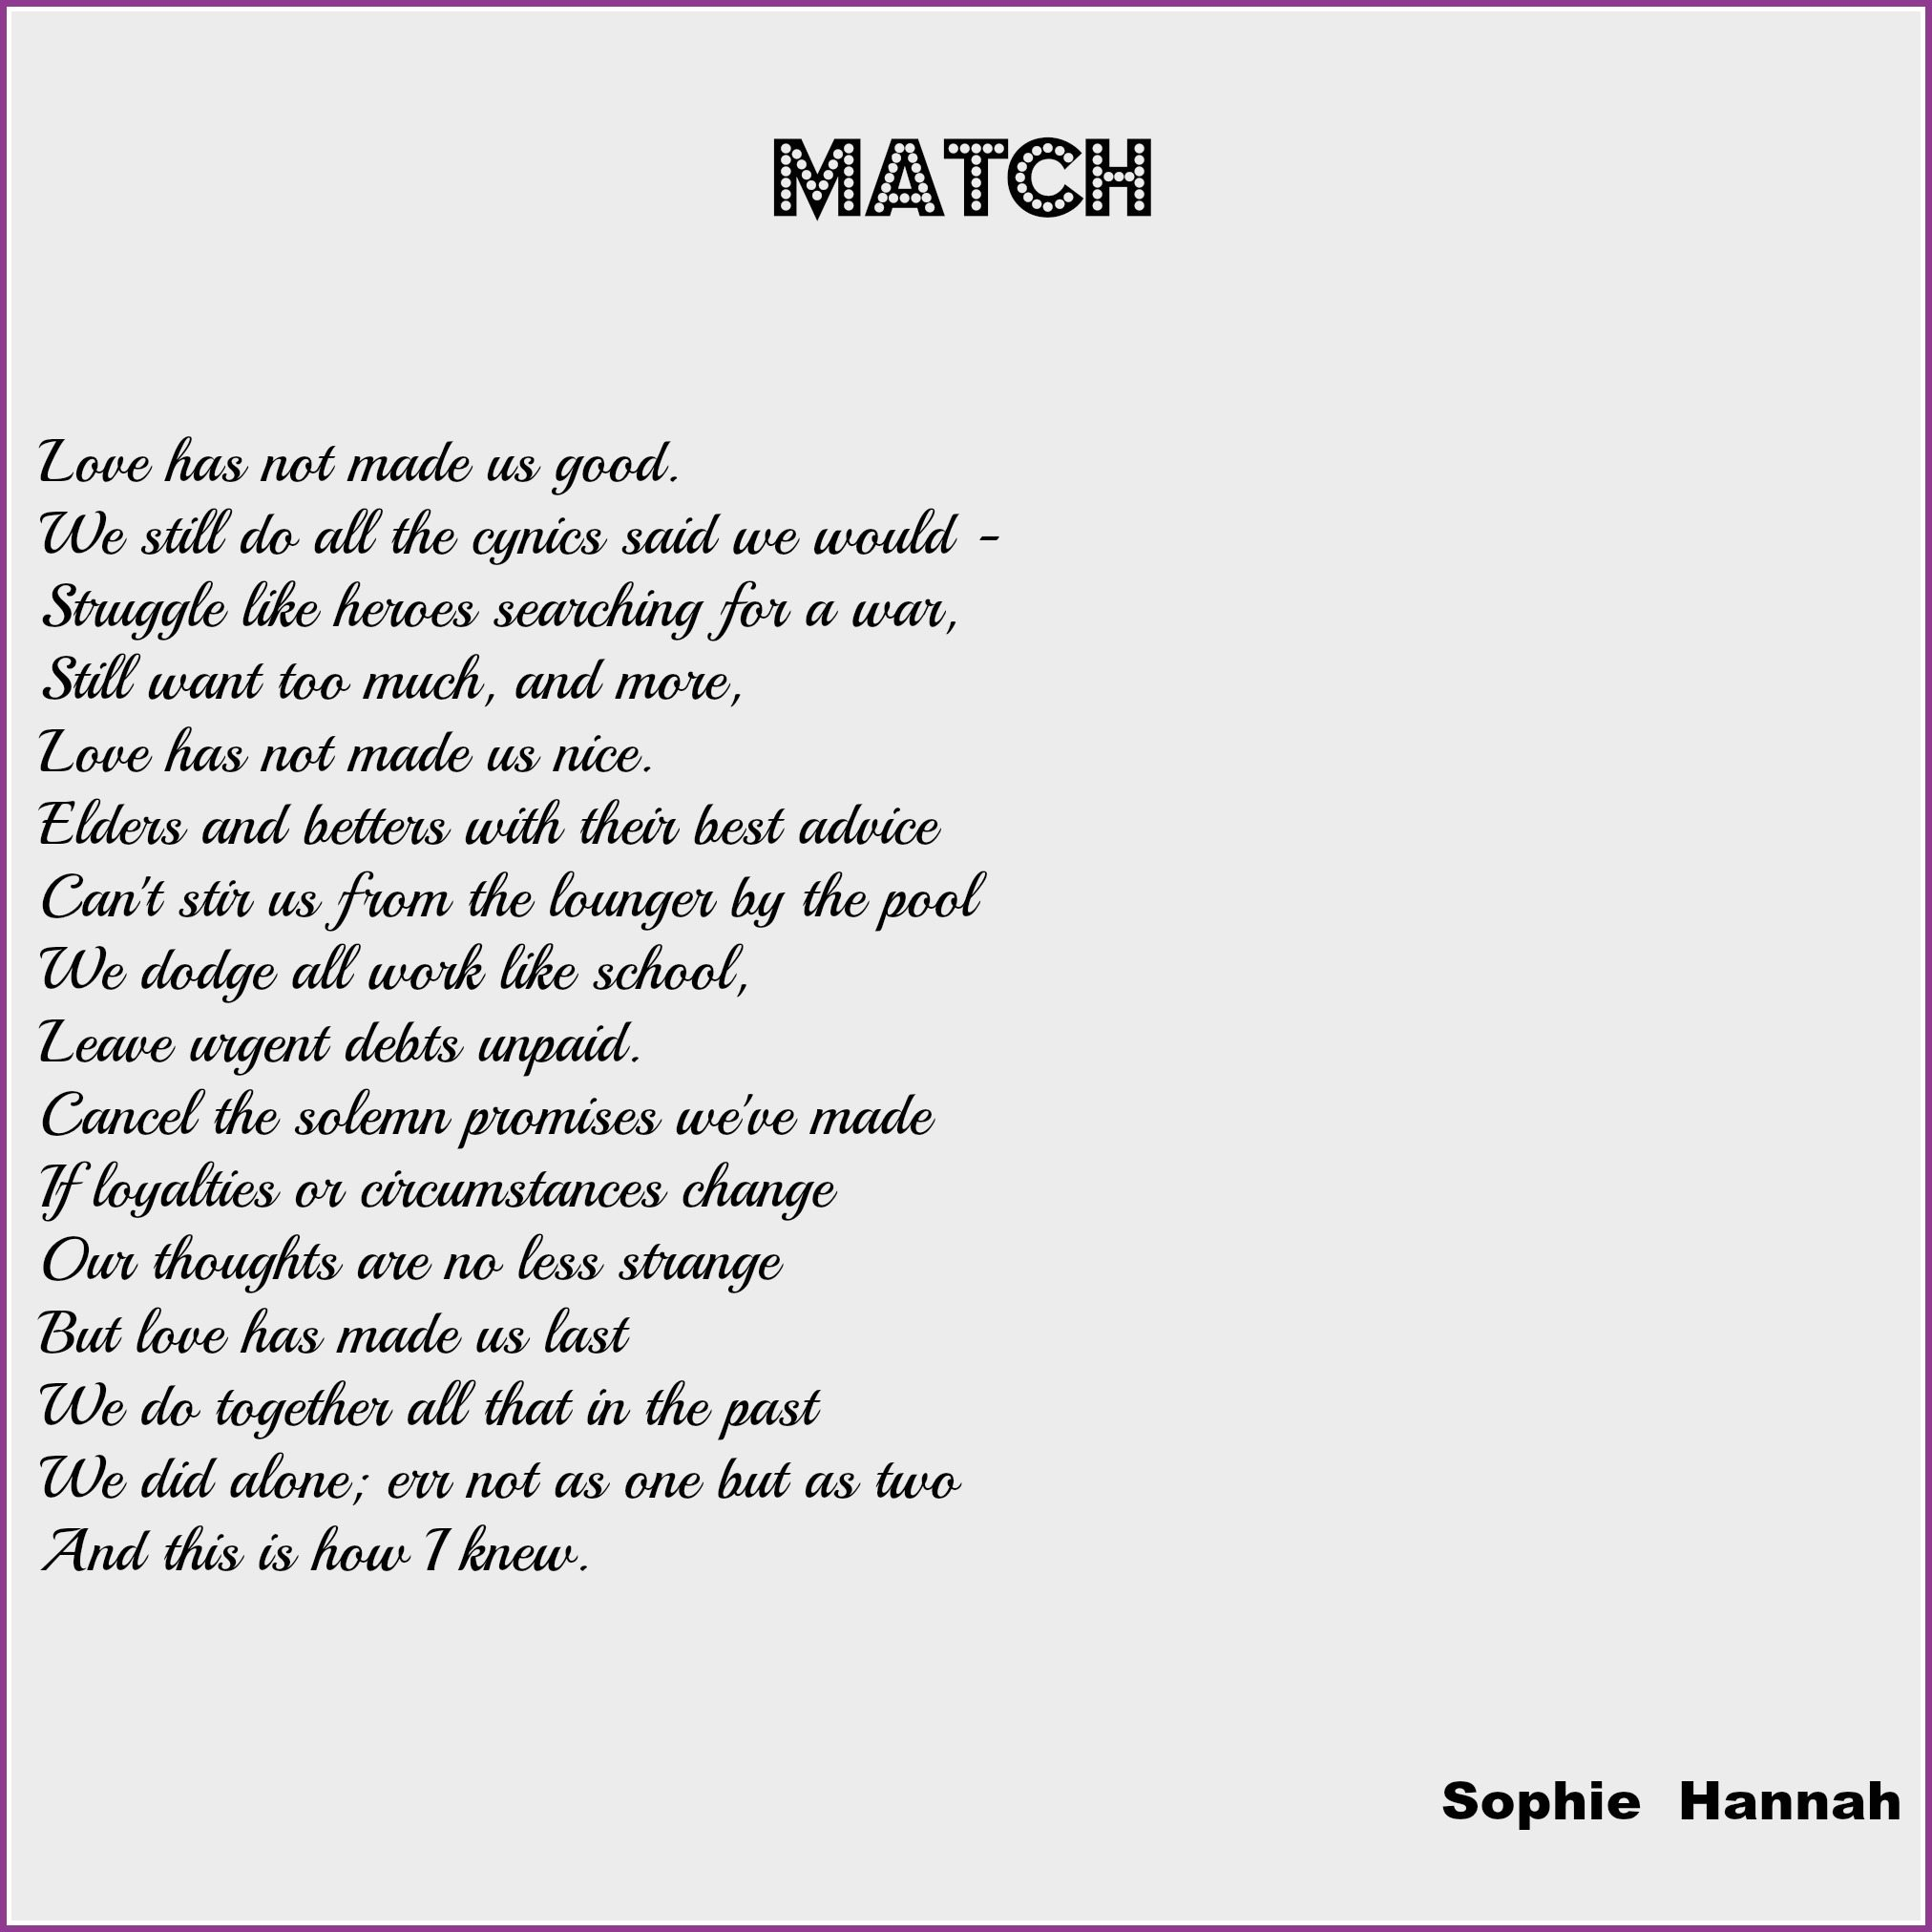 Wedding Reading: Match